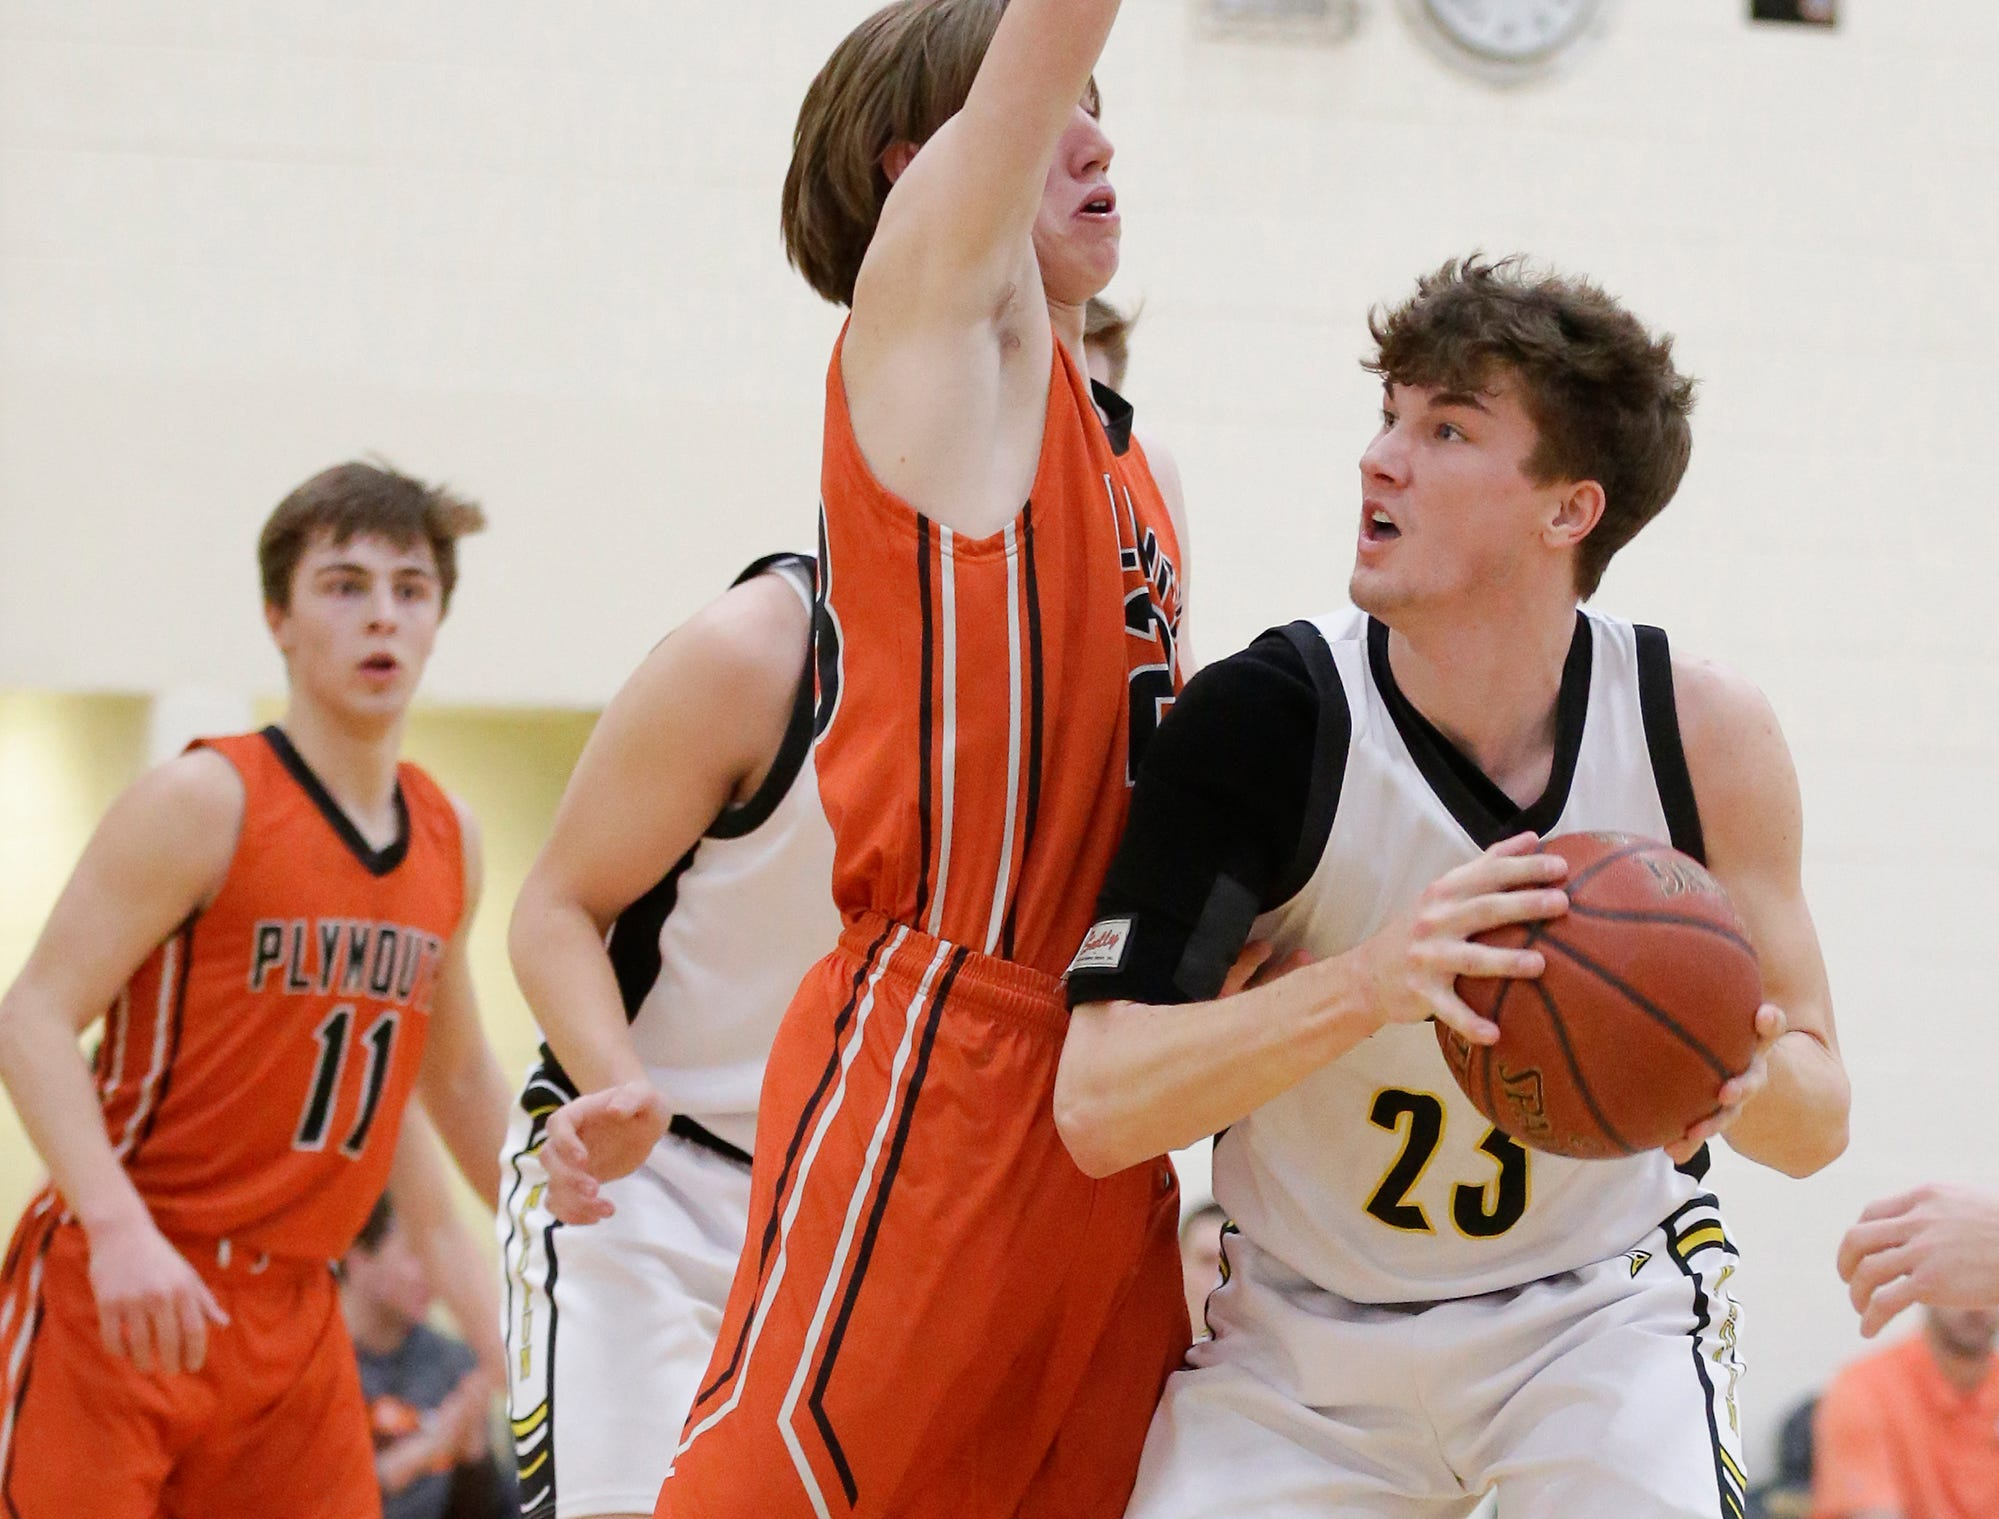 Waupun High School boys basketball's Reece Homan eyes up the basket while being defended by Plymouth High School's Zach Zeeveld during their game Friday, February 15, 2019 in Waupun. Doug Raflik/USA TODAY NETWORK-Wisconsin